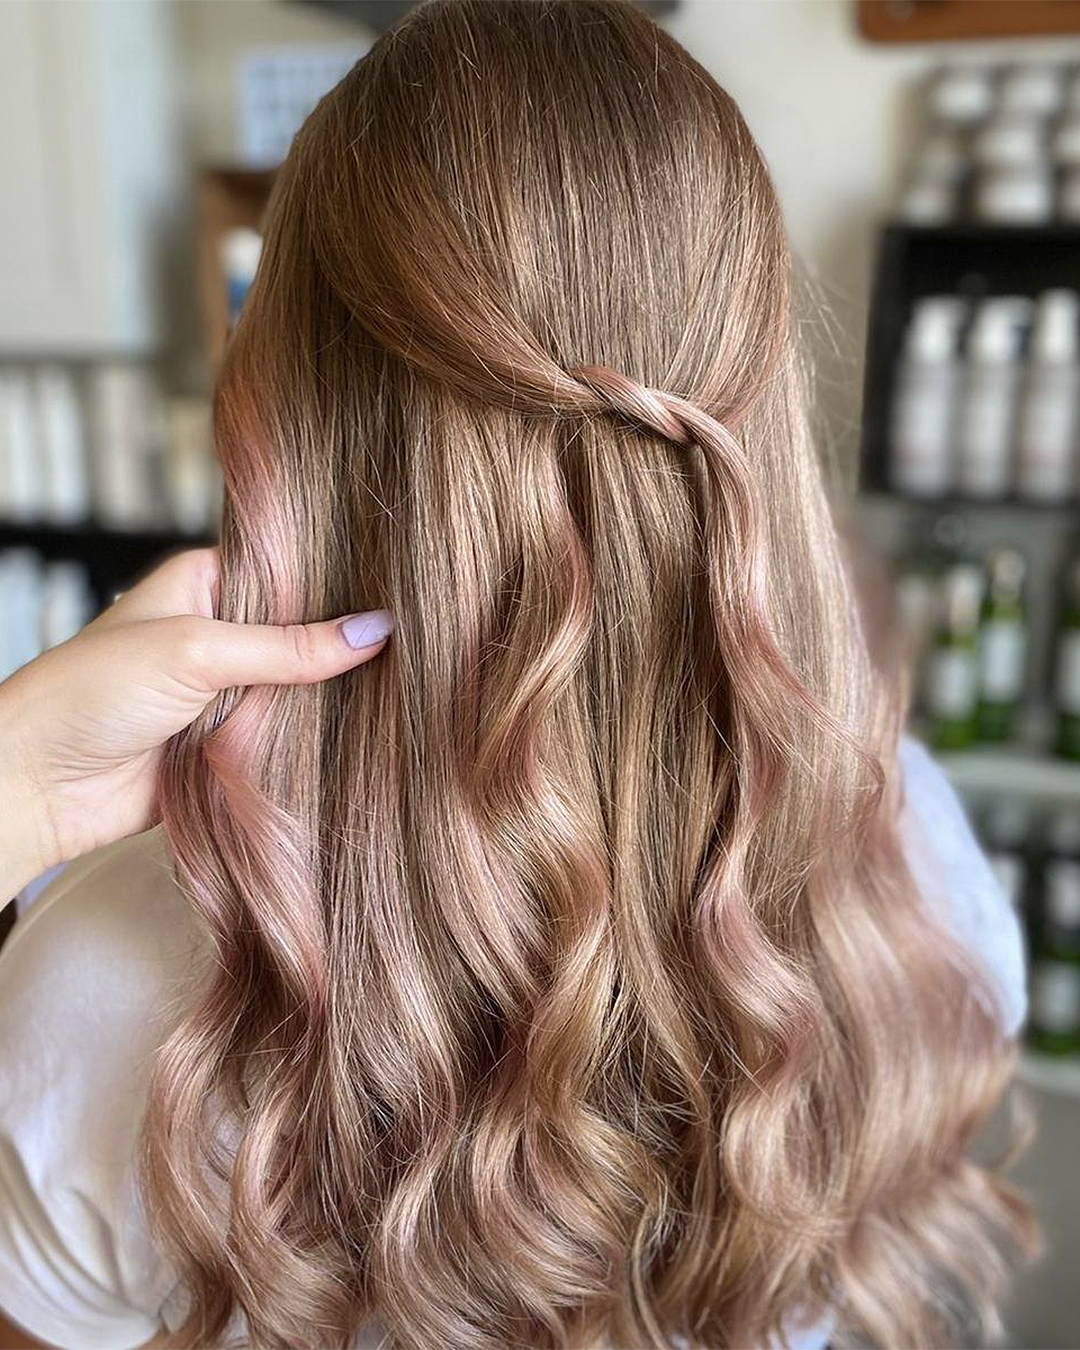 A woman with her back to the camera showing her softly pink wavy hair.